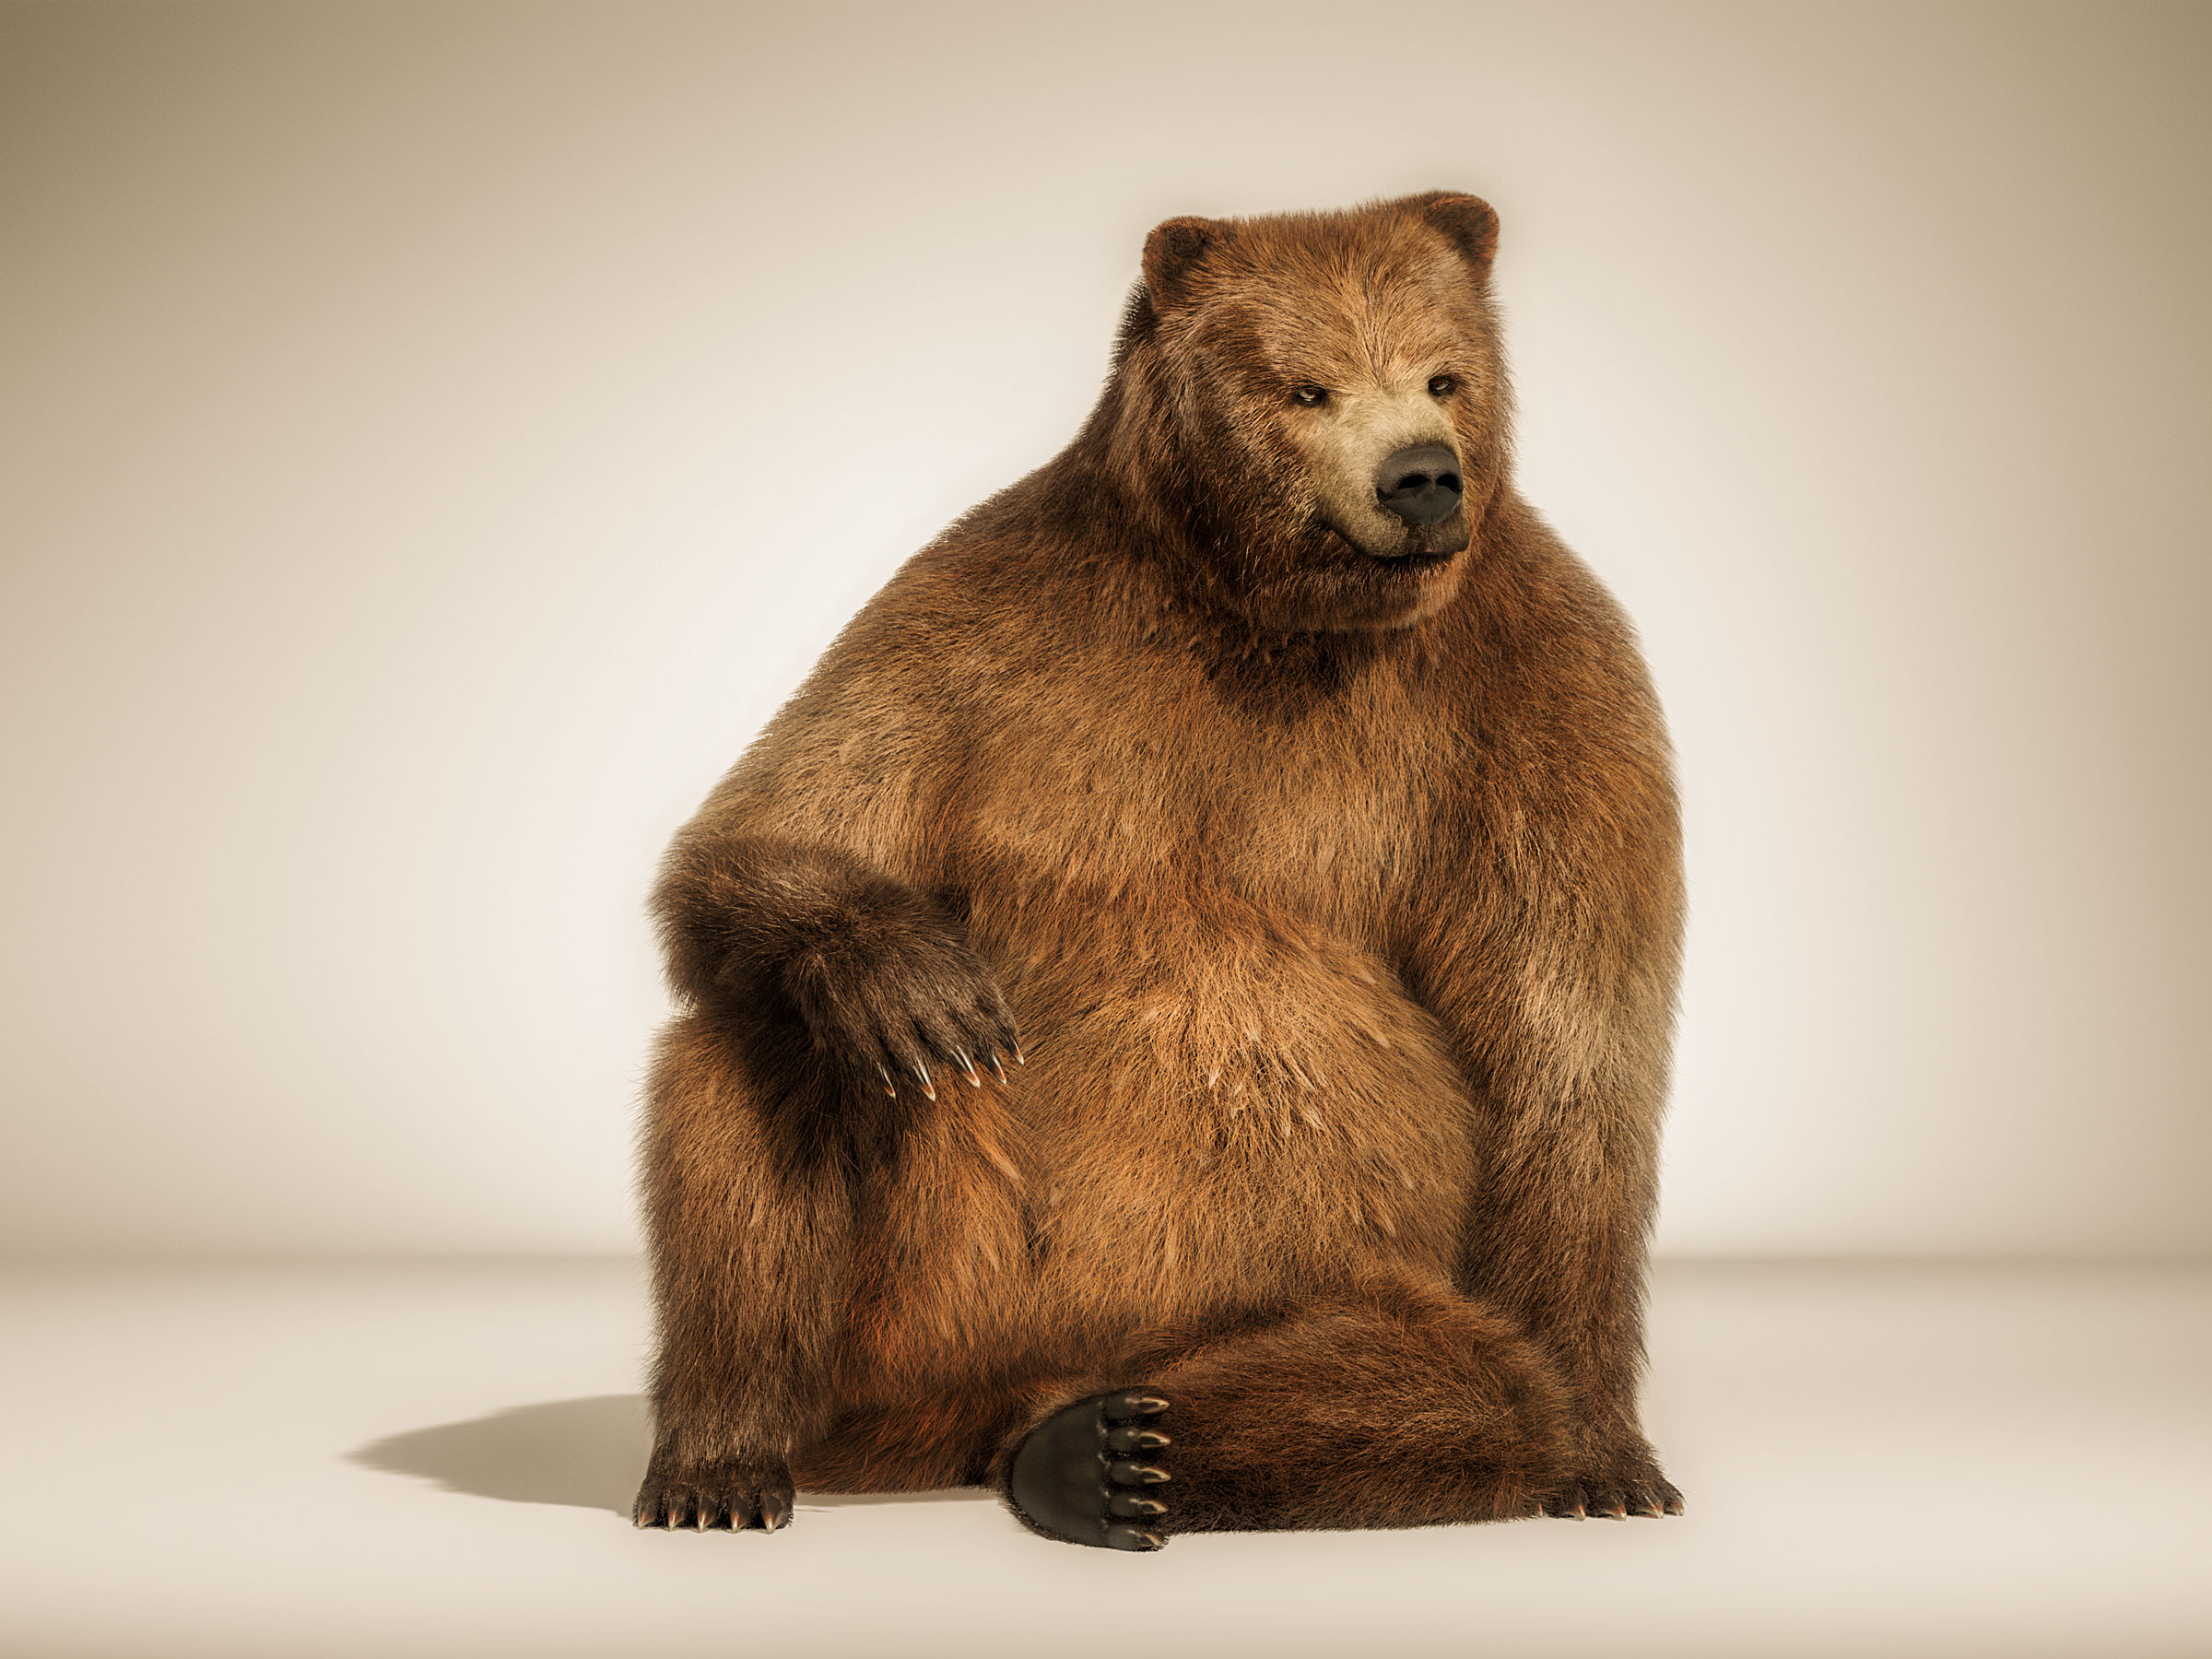 brown_bear_sitting_tank_cgi_london_post_production